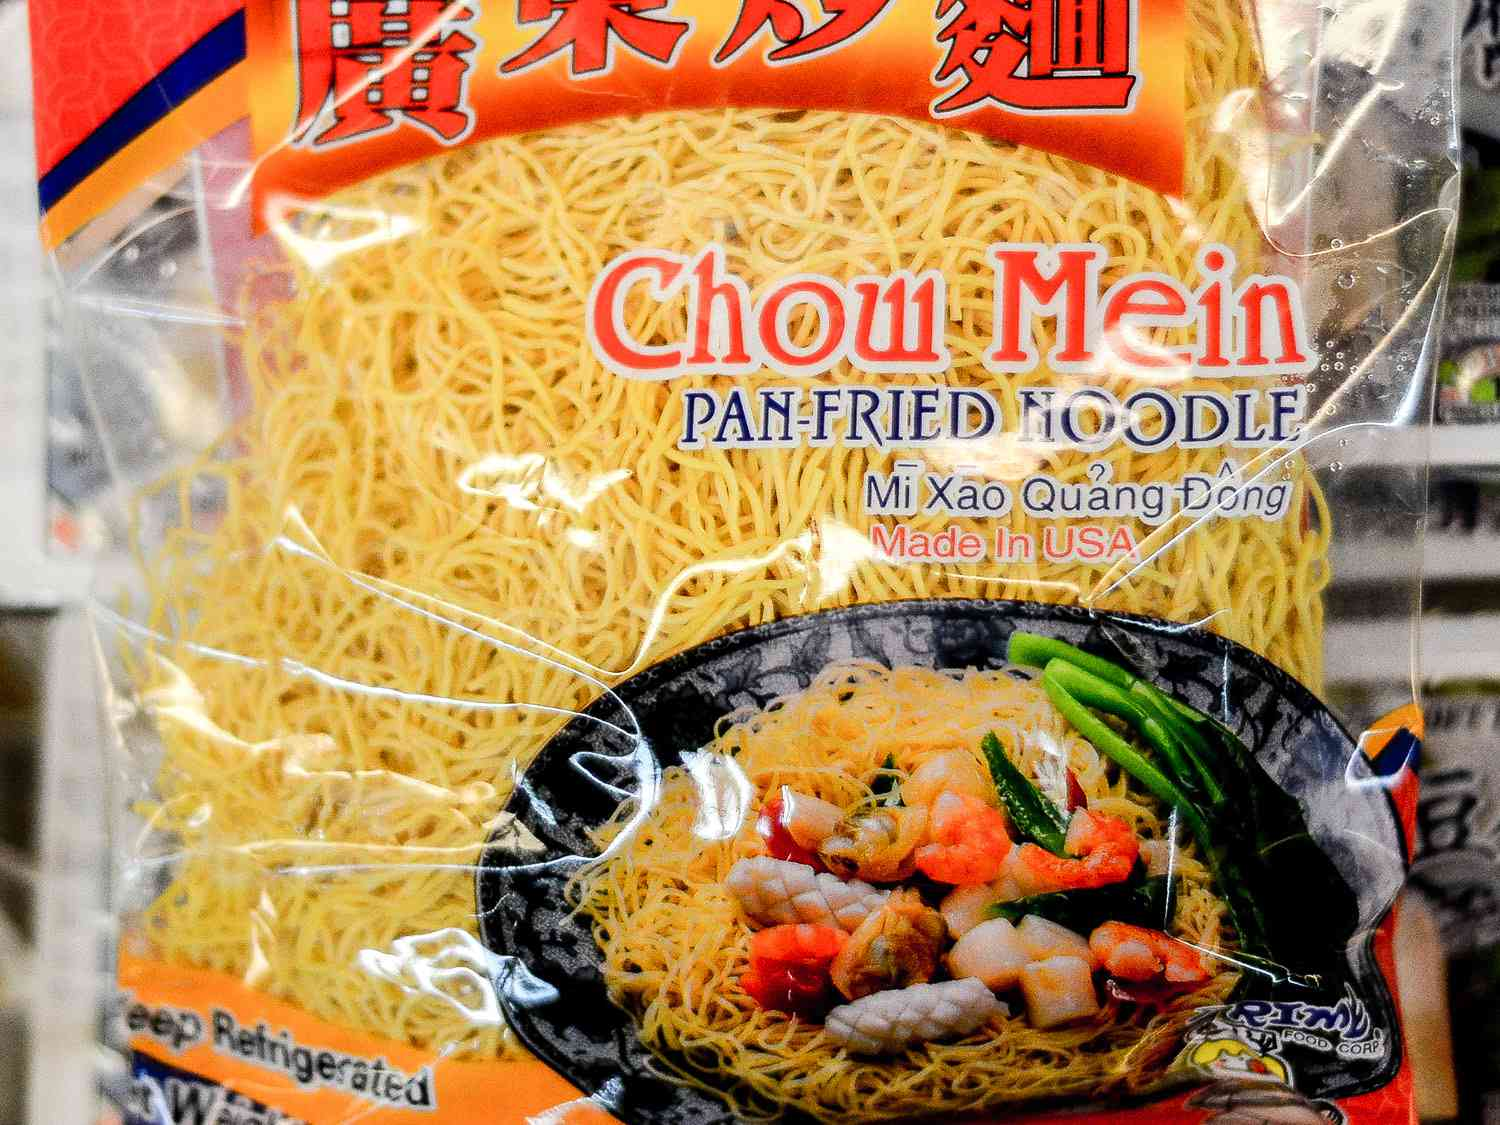 20140724-asian-noodle-guide-chow-mein-kevin-cox-2-edit.jpg